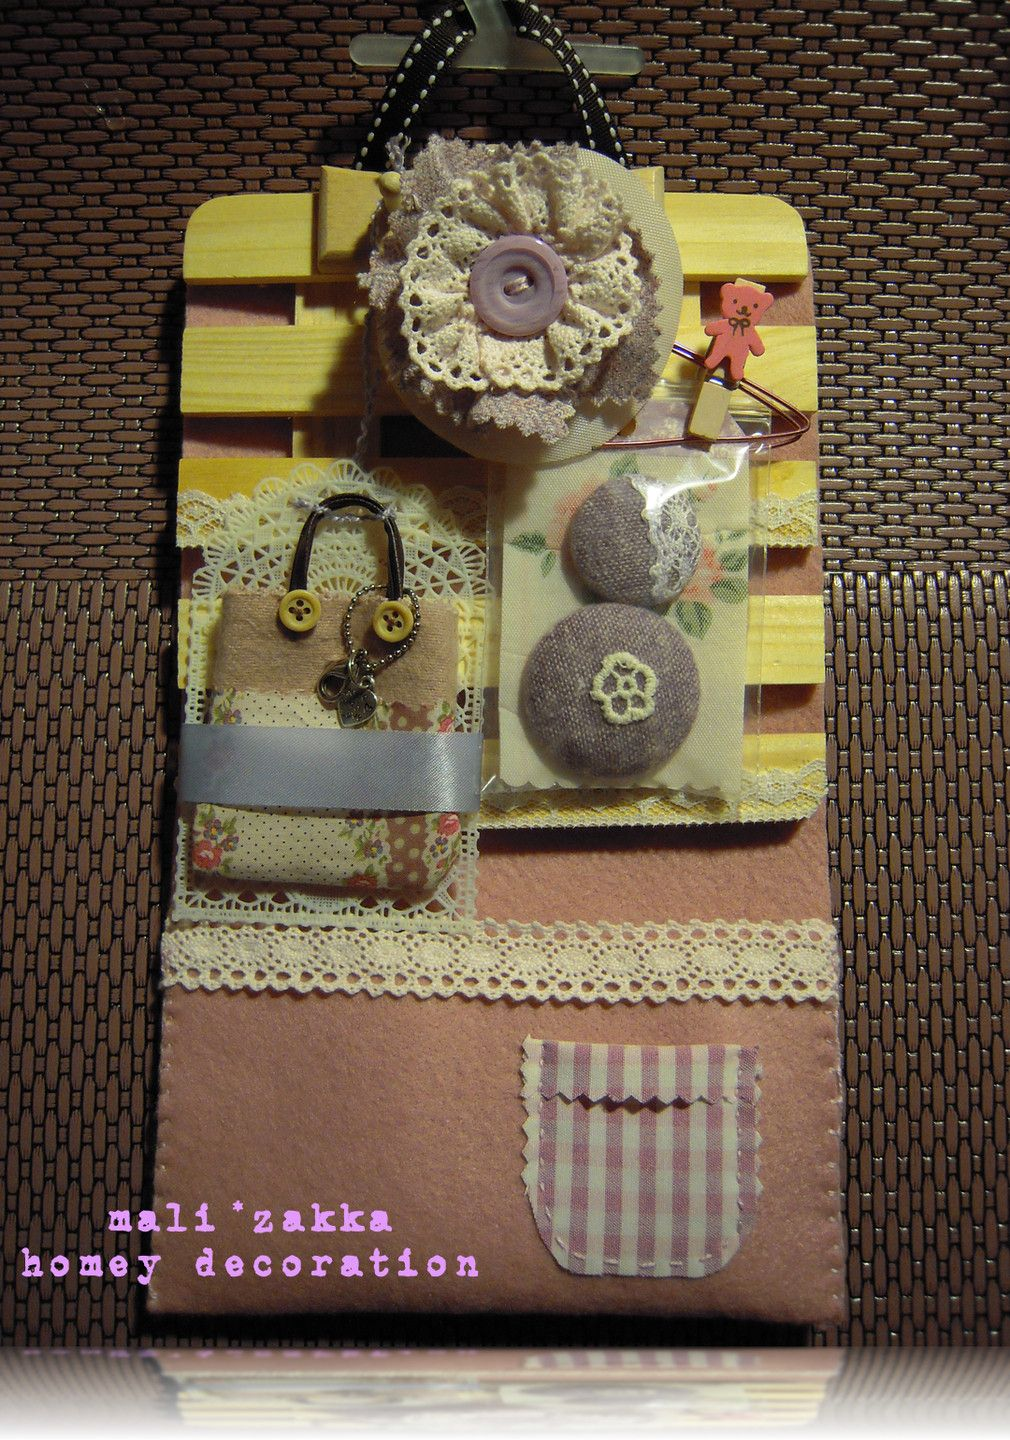 homey decorative gift .... put all those fabric little things on it... handmade with love